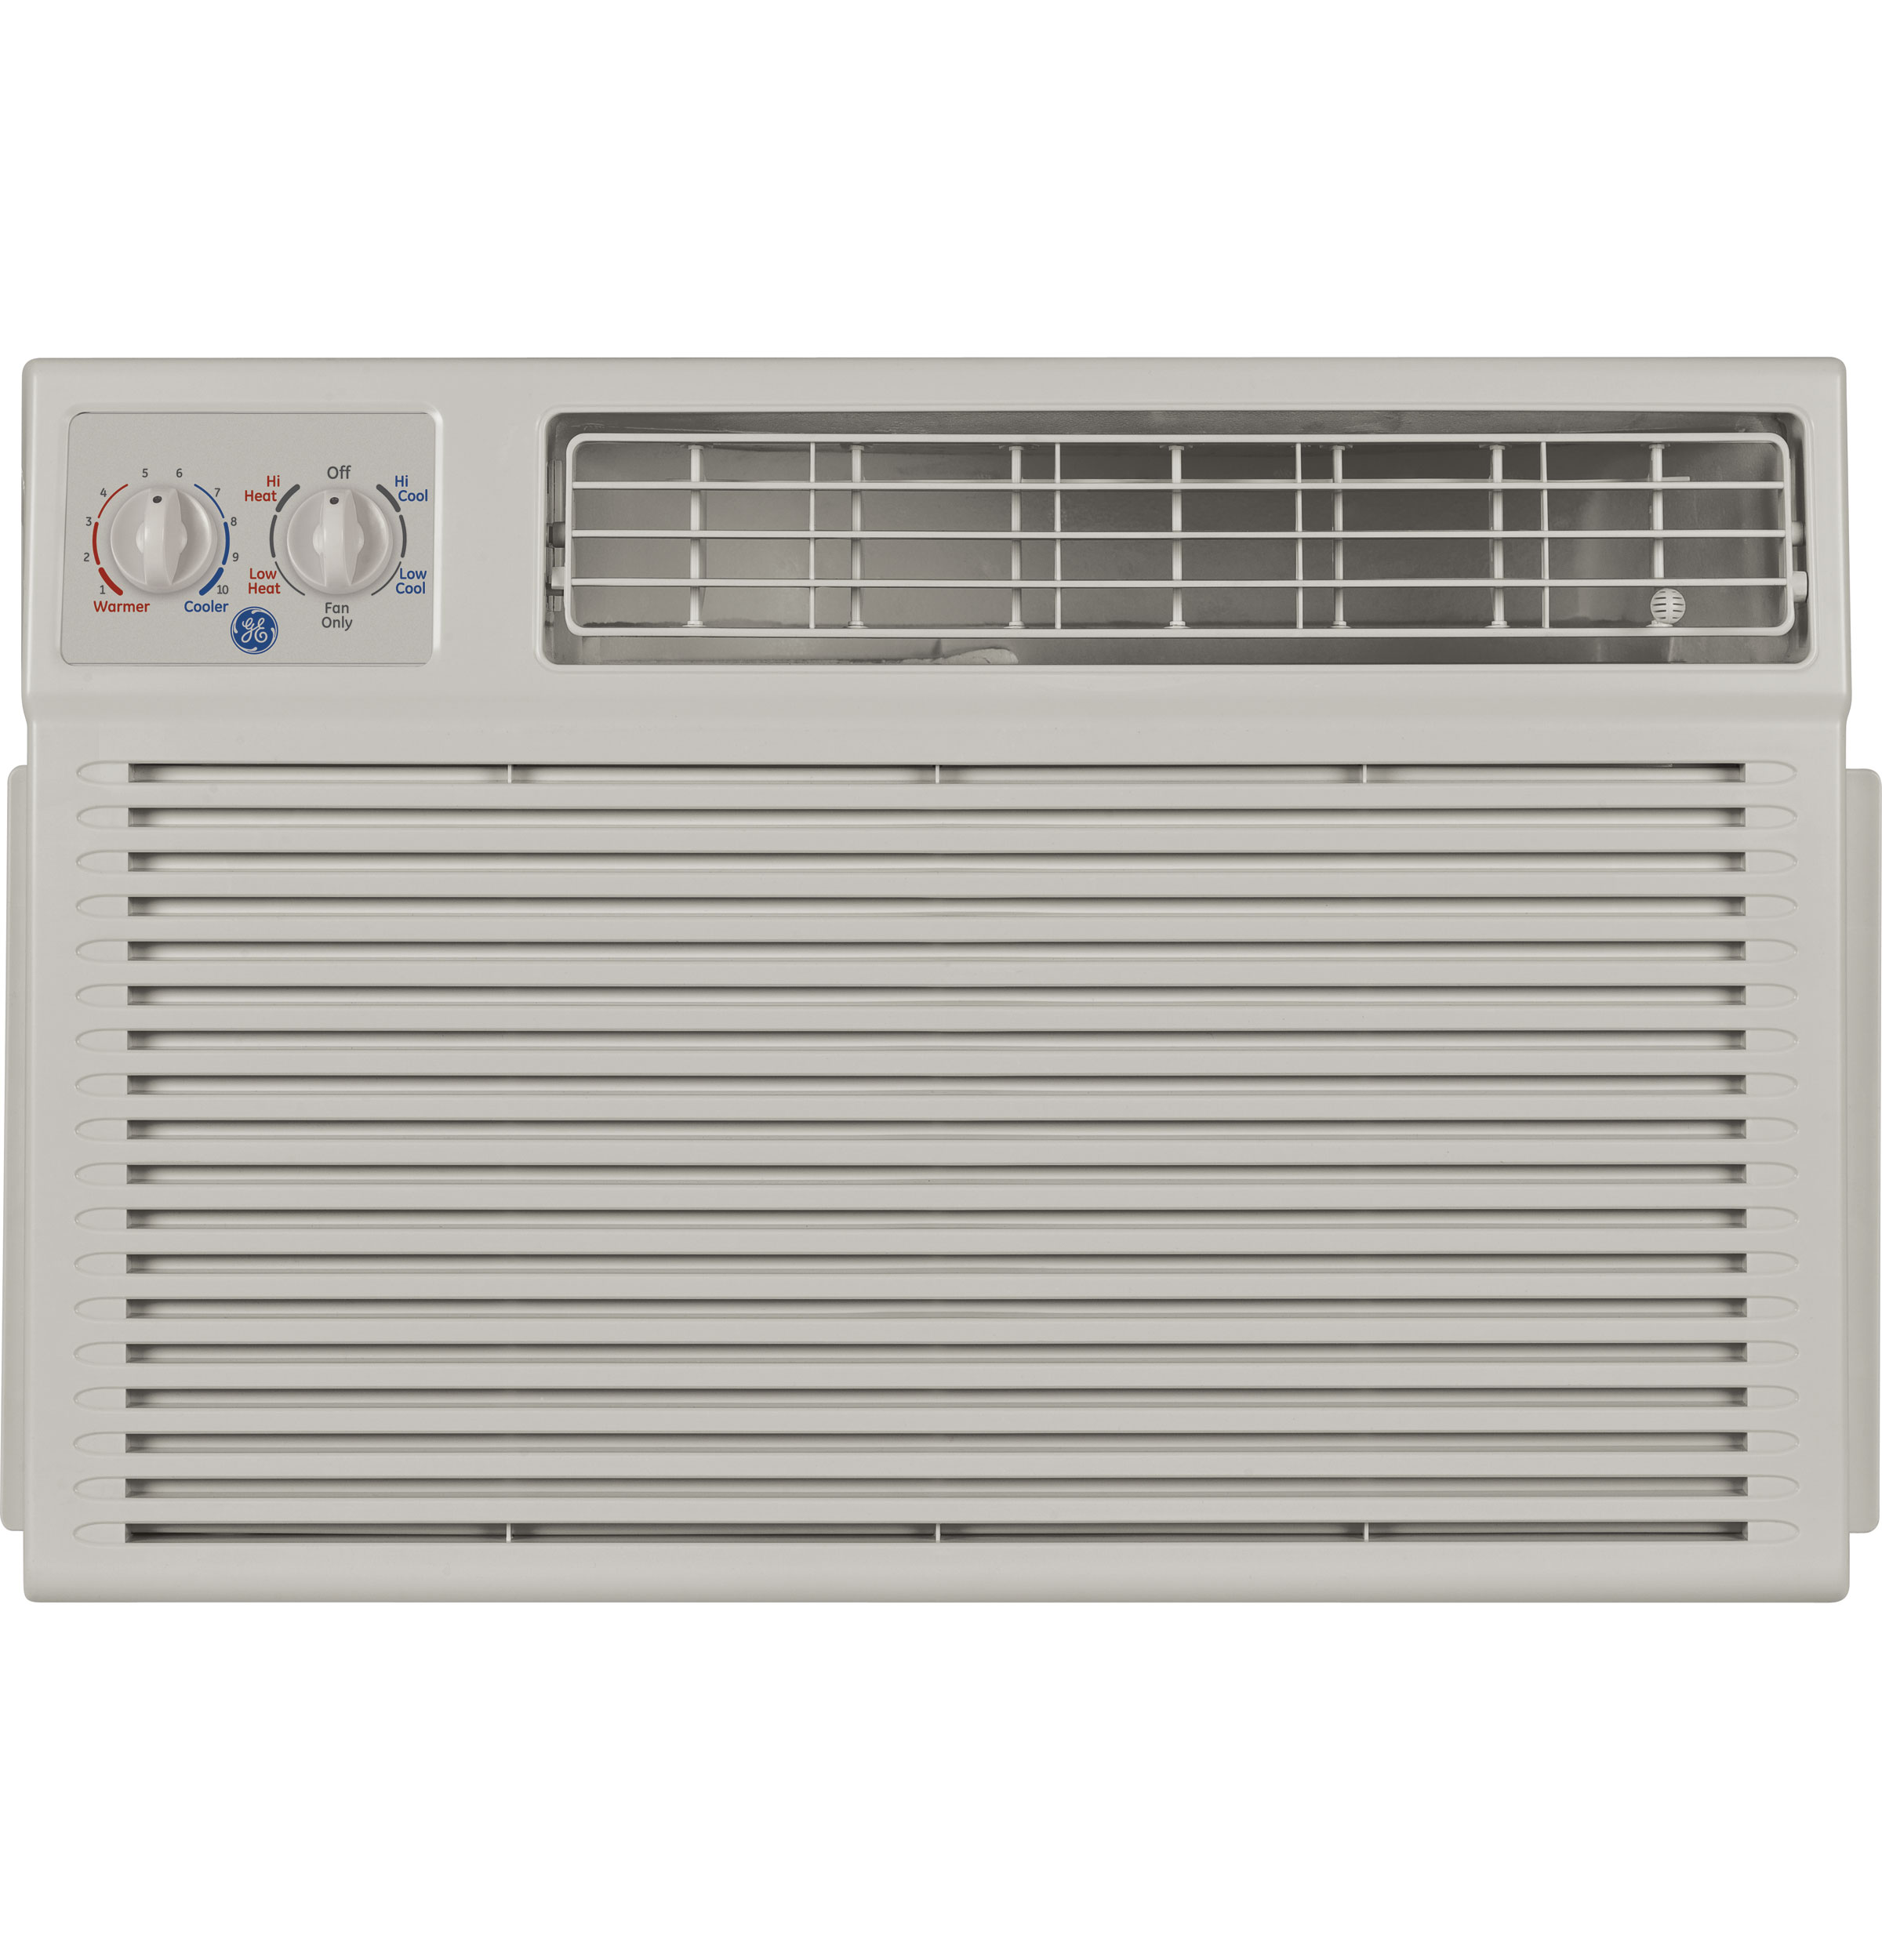 AEE08AQ Ge aee08aq Window/Wall Air Conditioners #294B7F